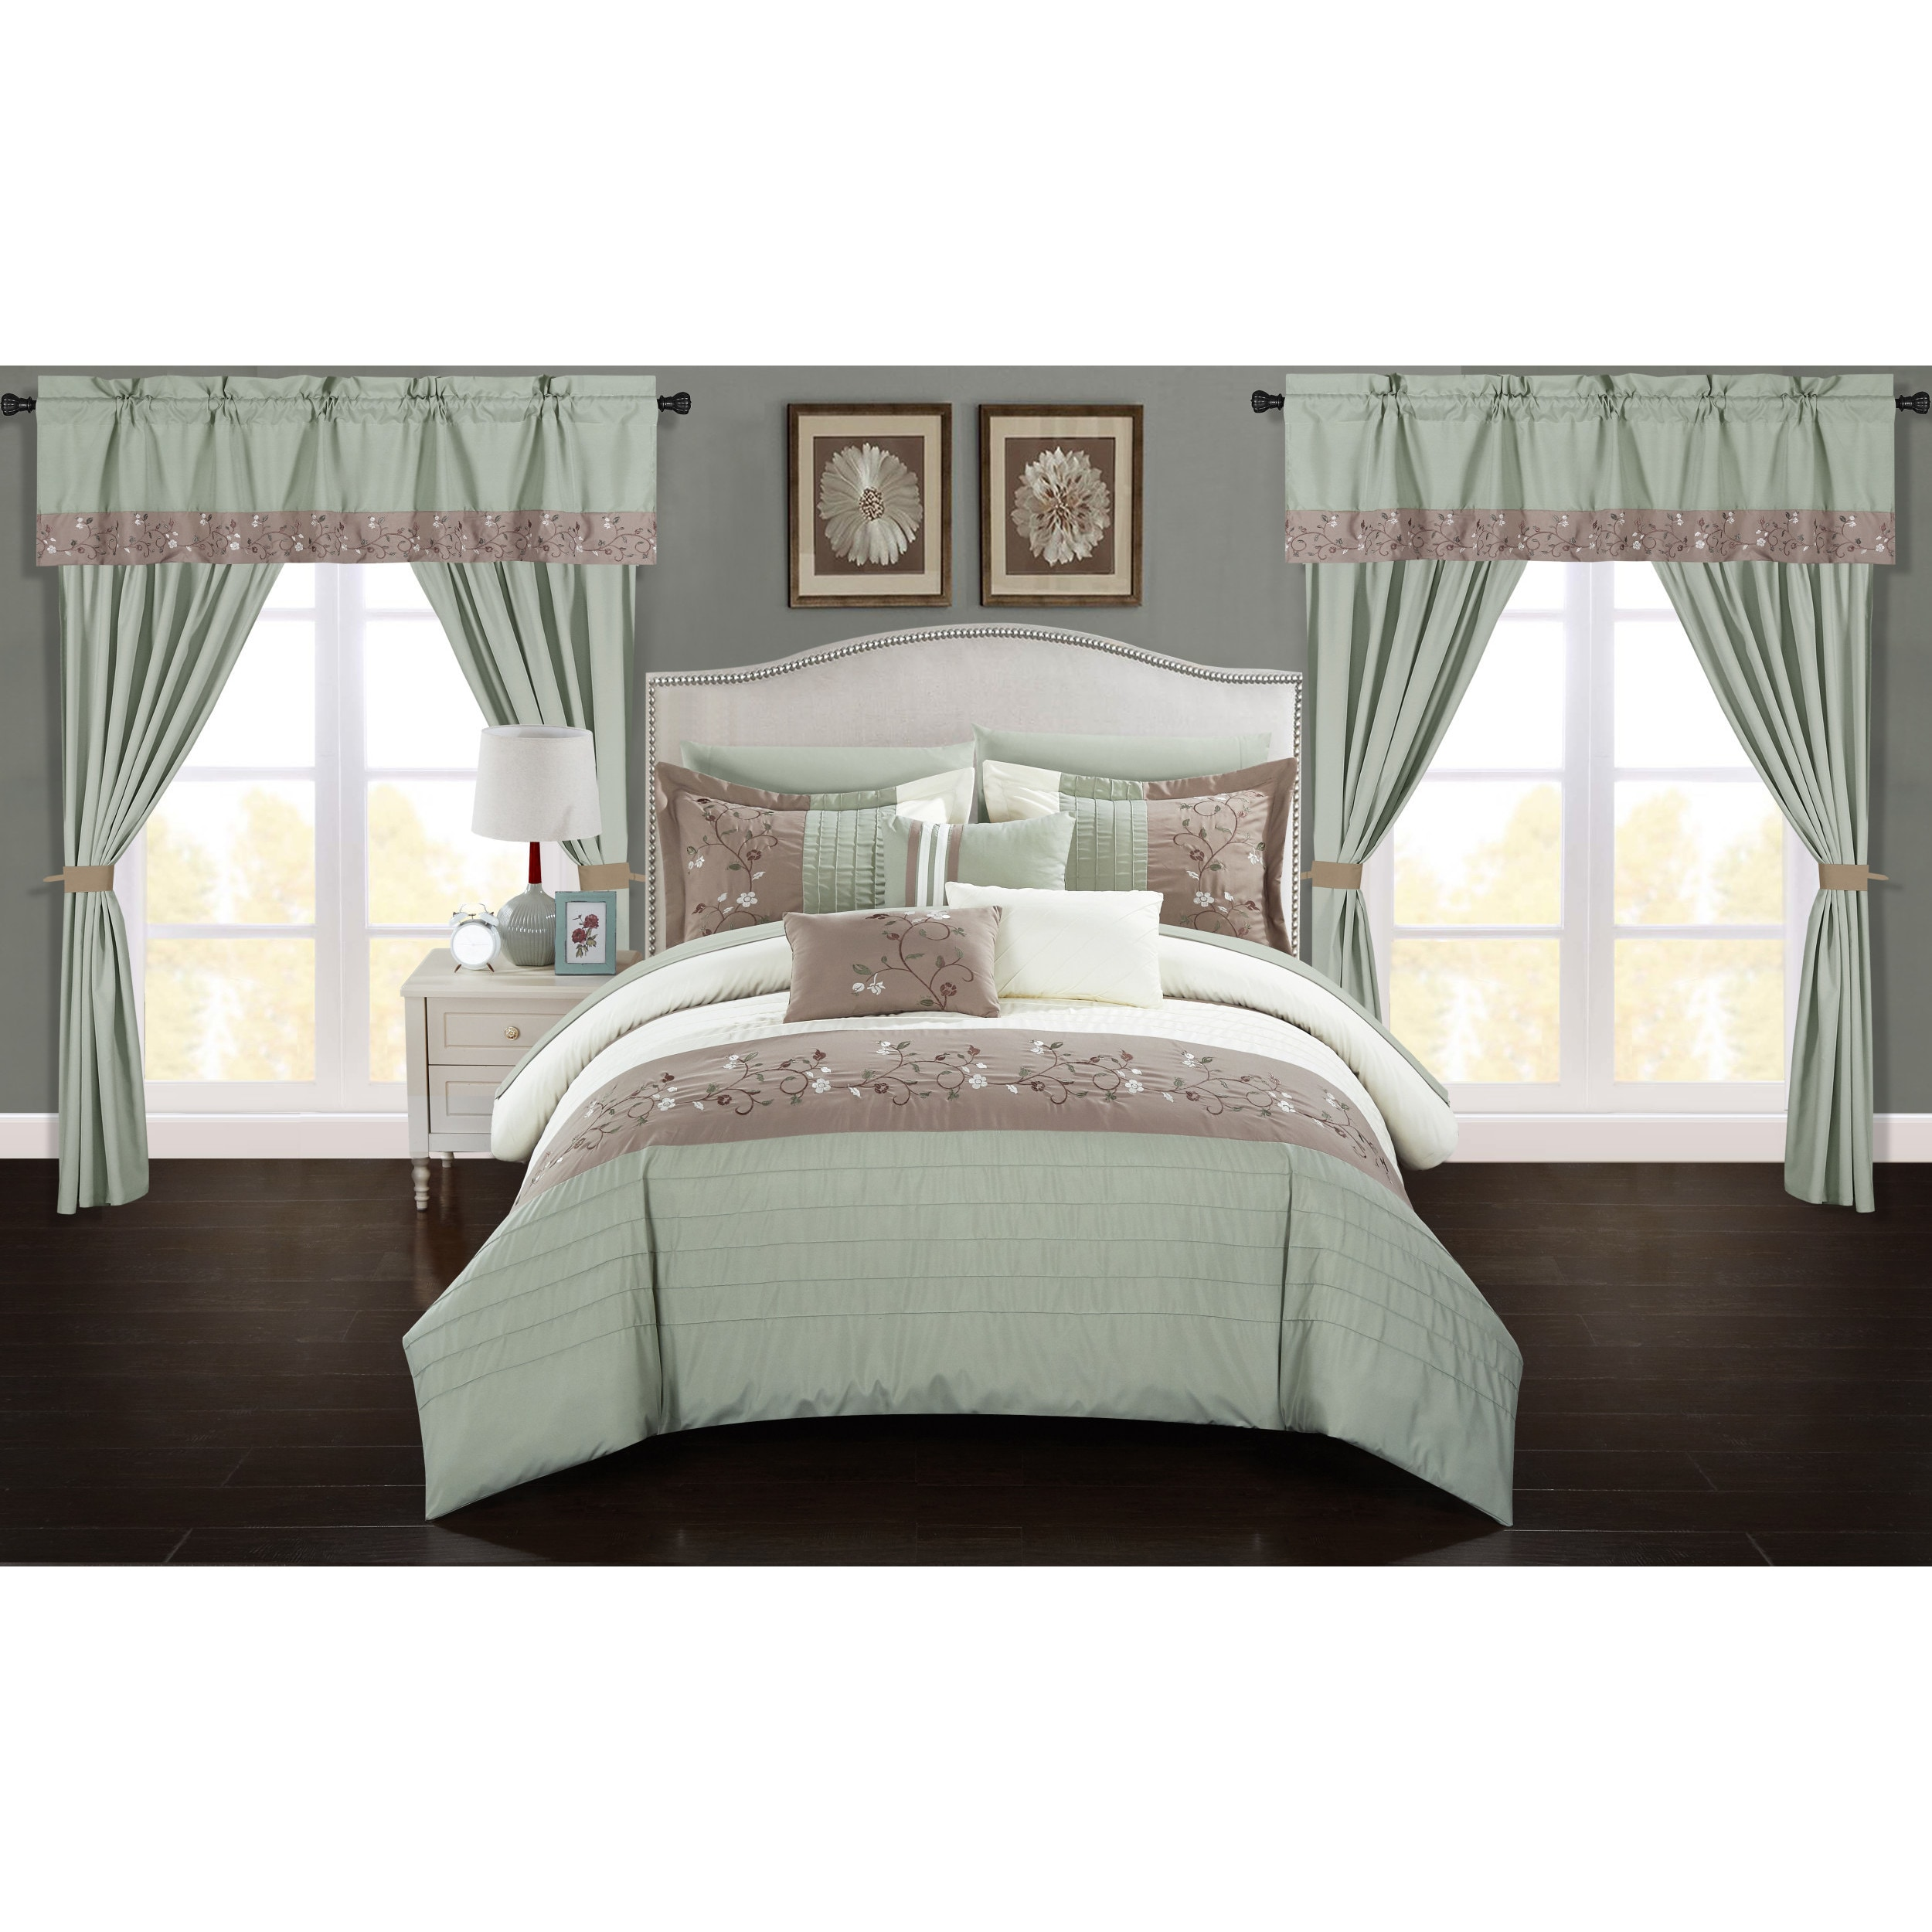 and sage green useful of bed sets jeseniacoant blue luxury new pinterest bedding pins forter pictures